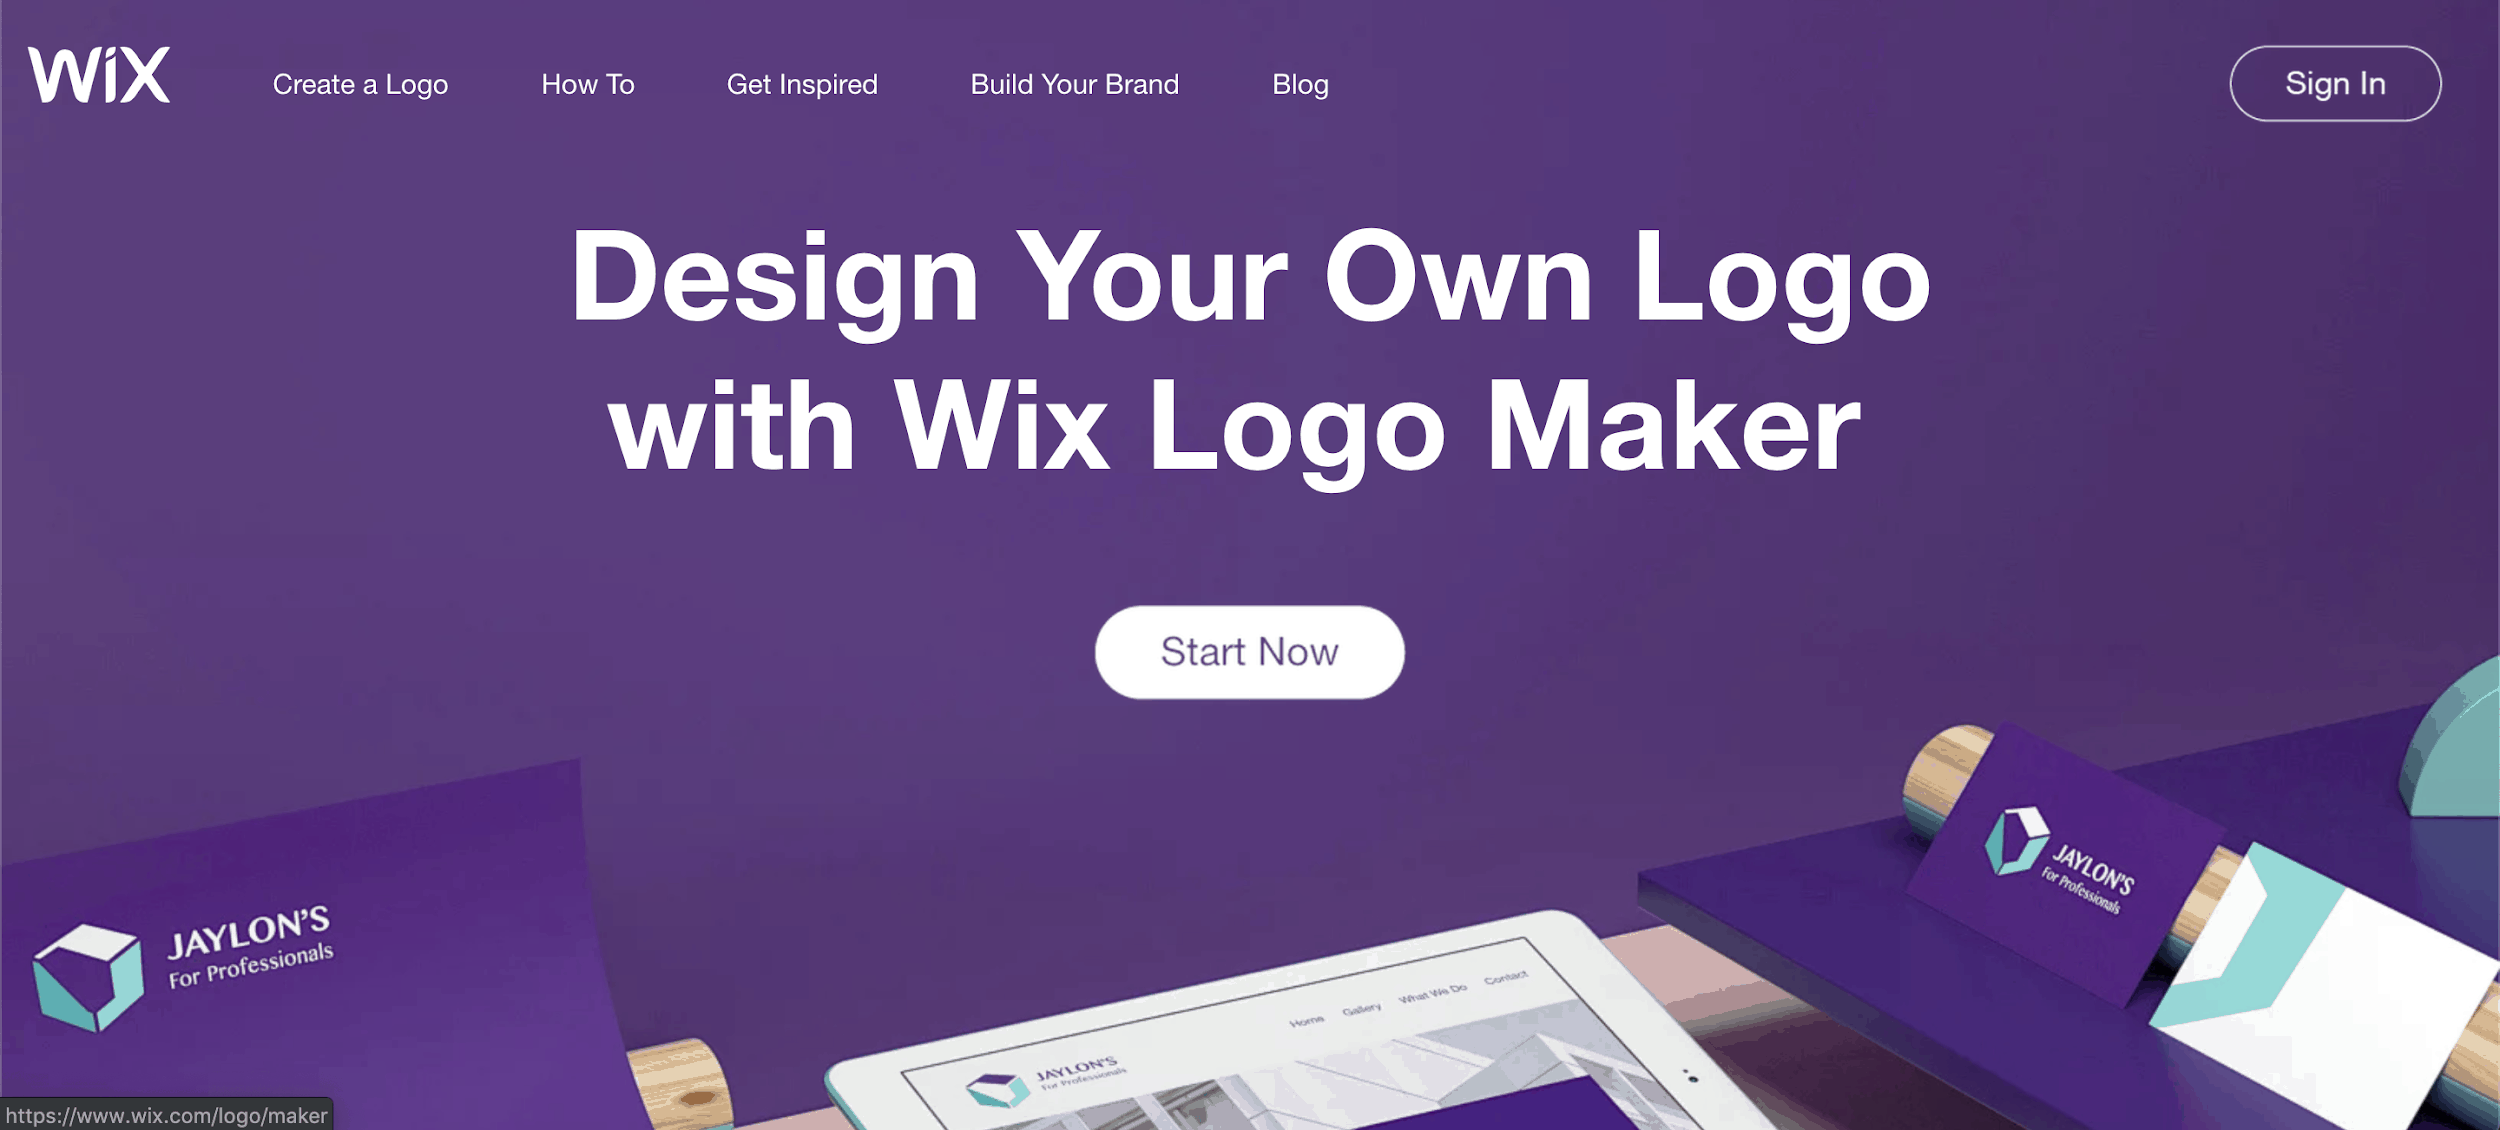 Wix Logo Maker screenshot - homepage